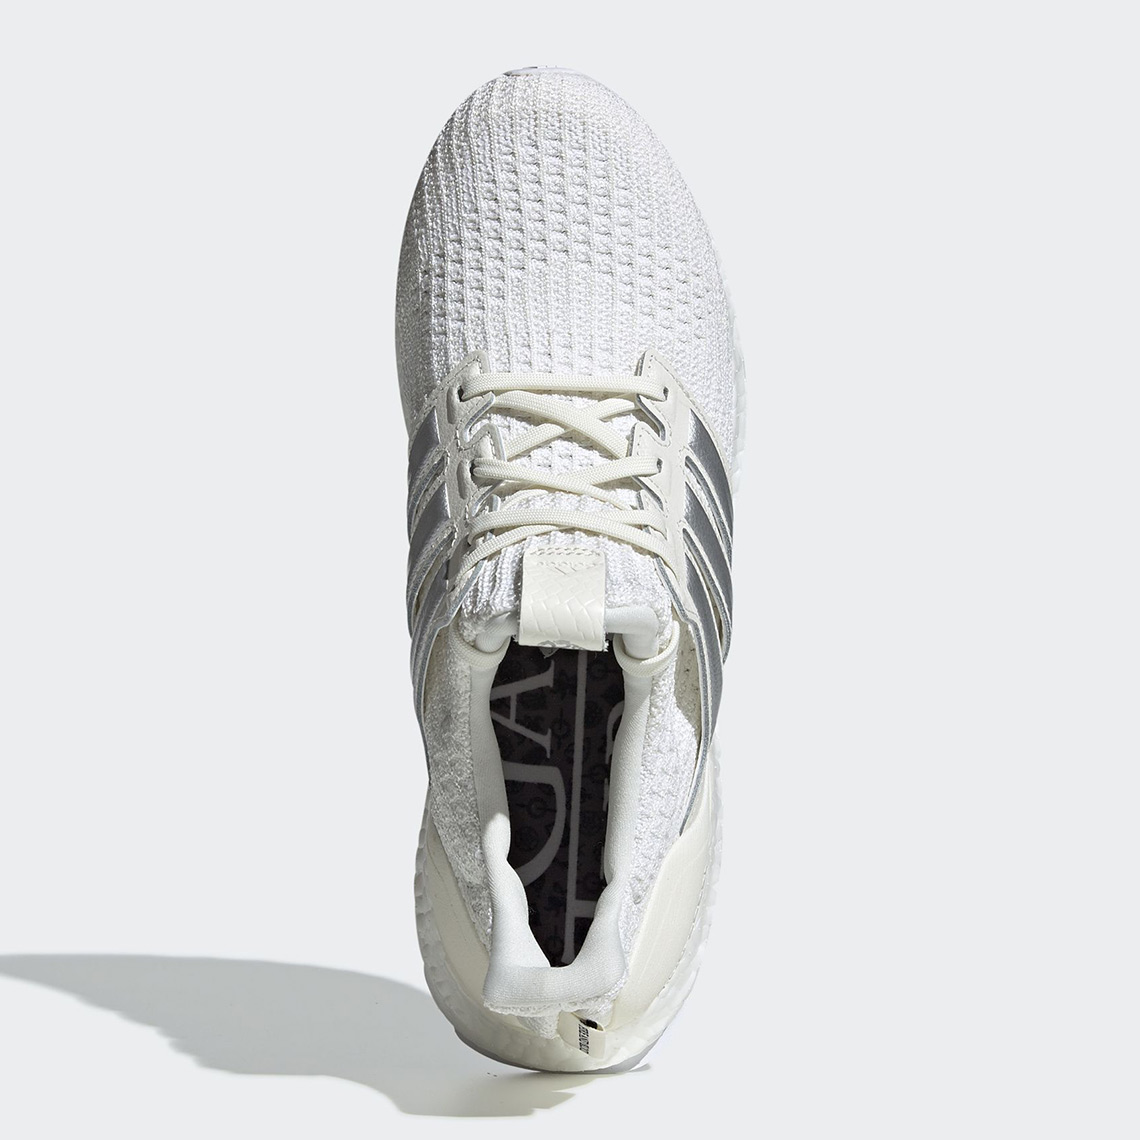 adidas-ultra-boost-game-of-thrones-targaryan-white-ee3711-21.jpg